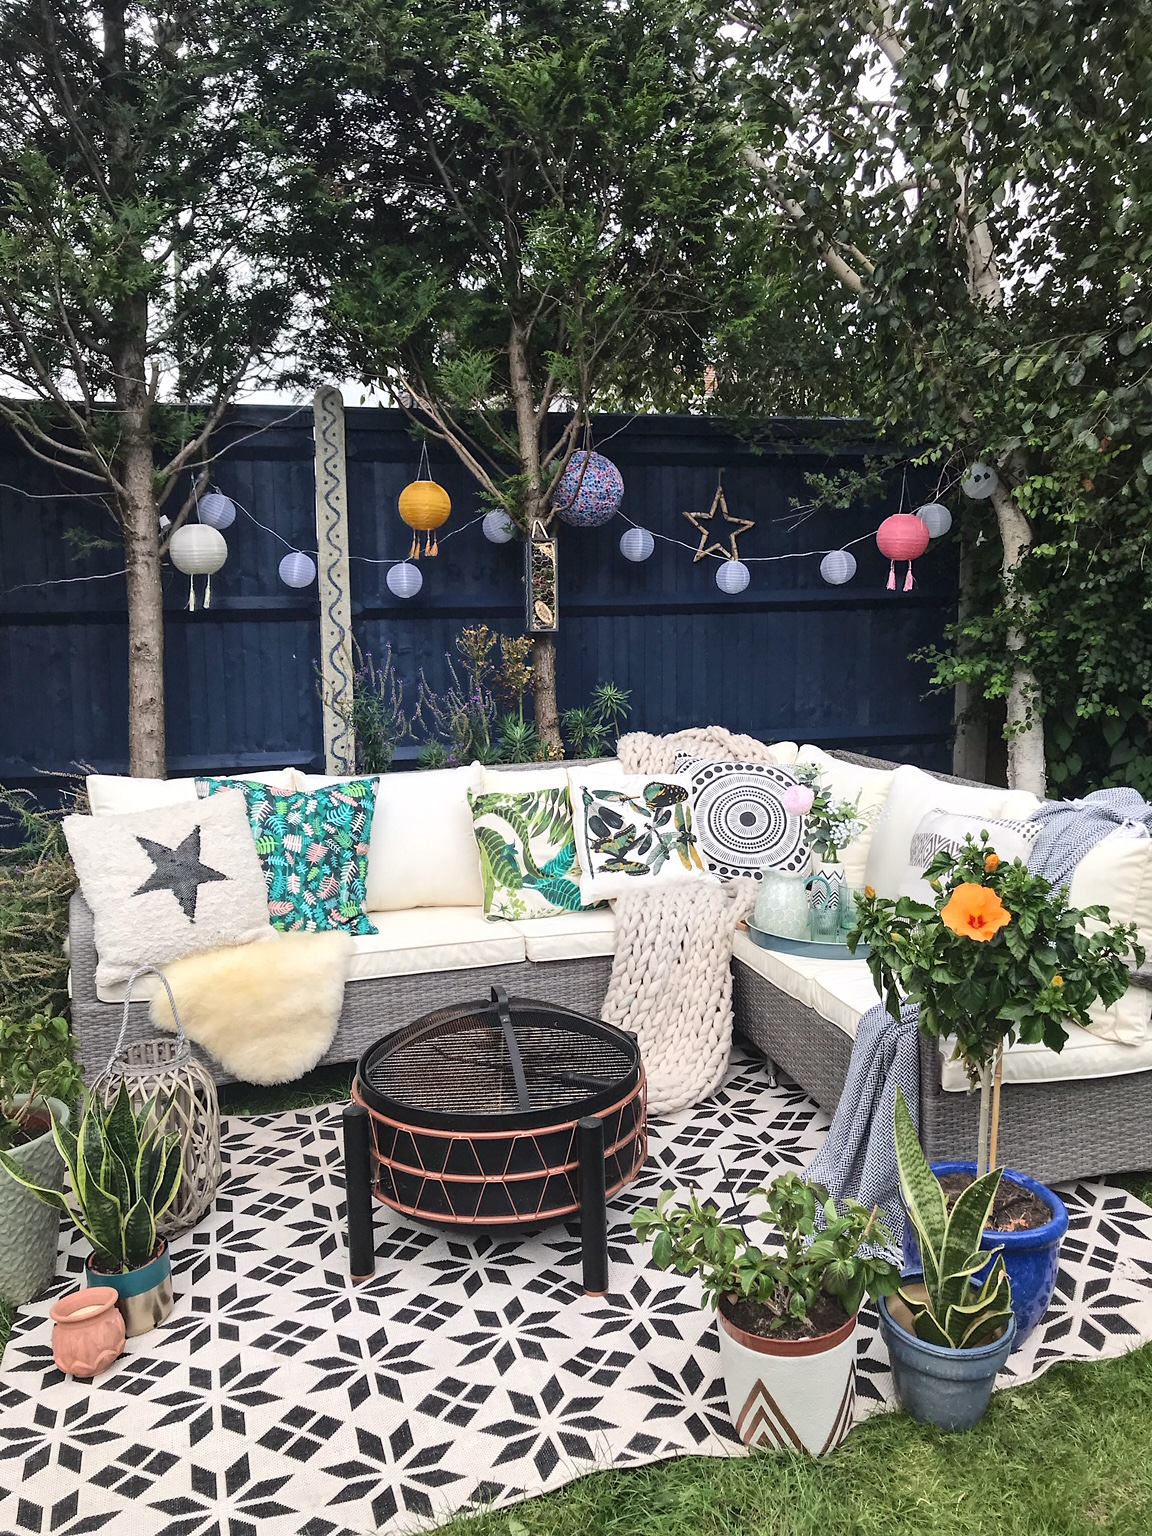 What an amazing back drop to our garden. Fence painted in  Cuprinol  Iris.  Lanterns  from lights4fun.co.uk.  Rattan furniture  from Argos Home.  Rug  from La Redoute.  Fire Pit  from Von Haus.  Knitted throw  from Cox & Cox